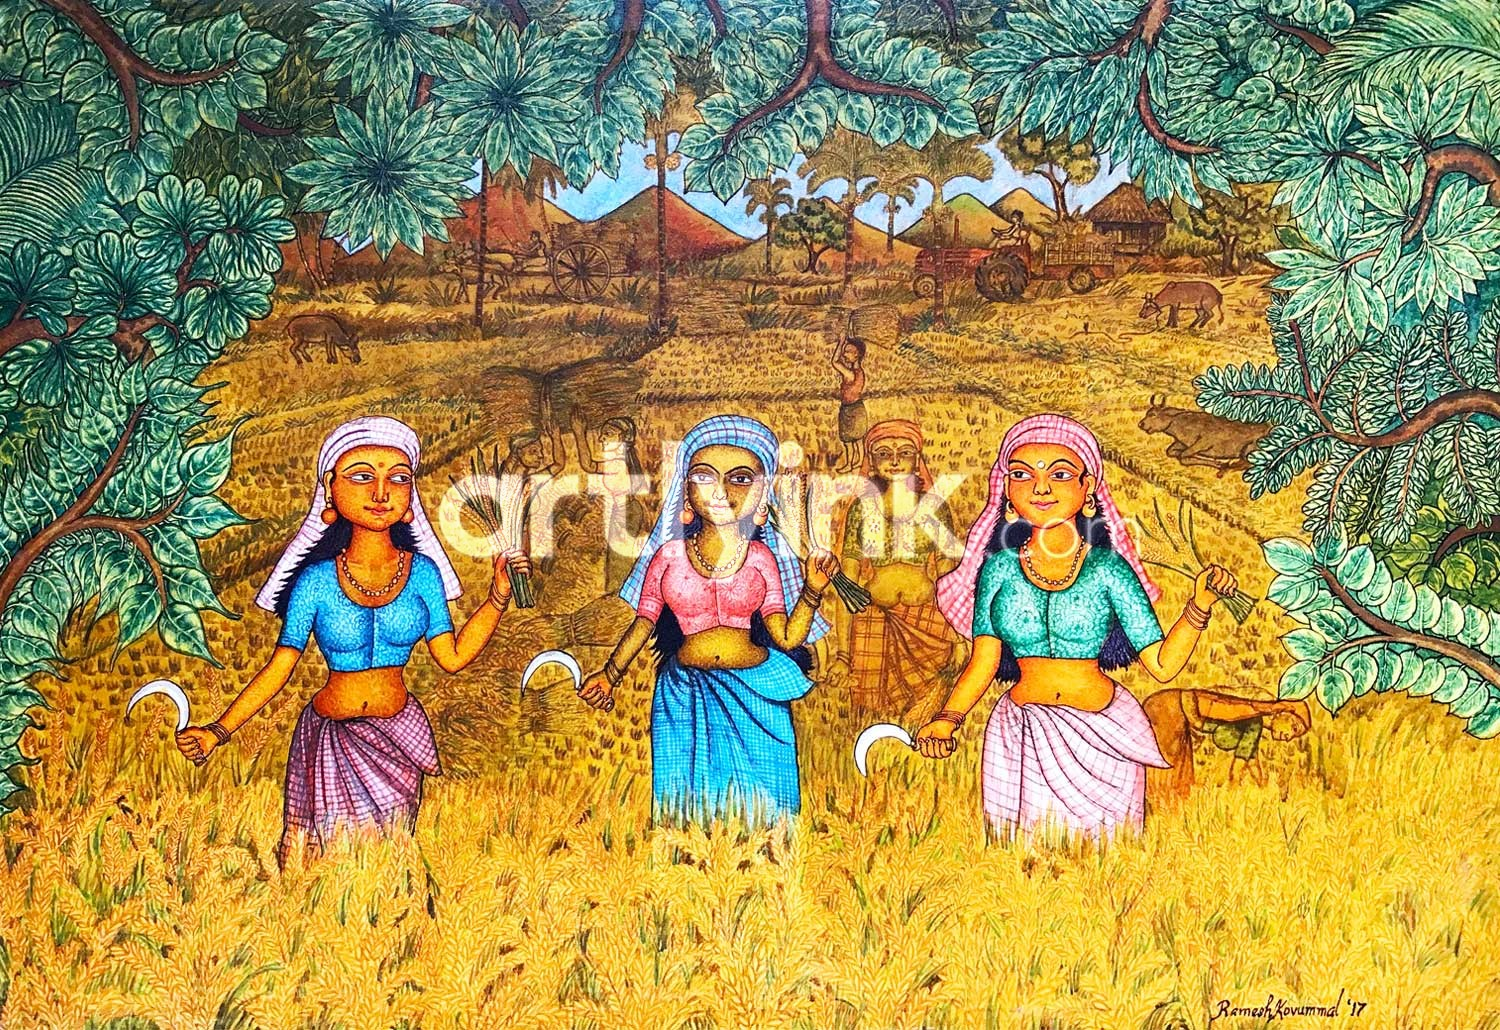 Nelkrishi Mural Paintings